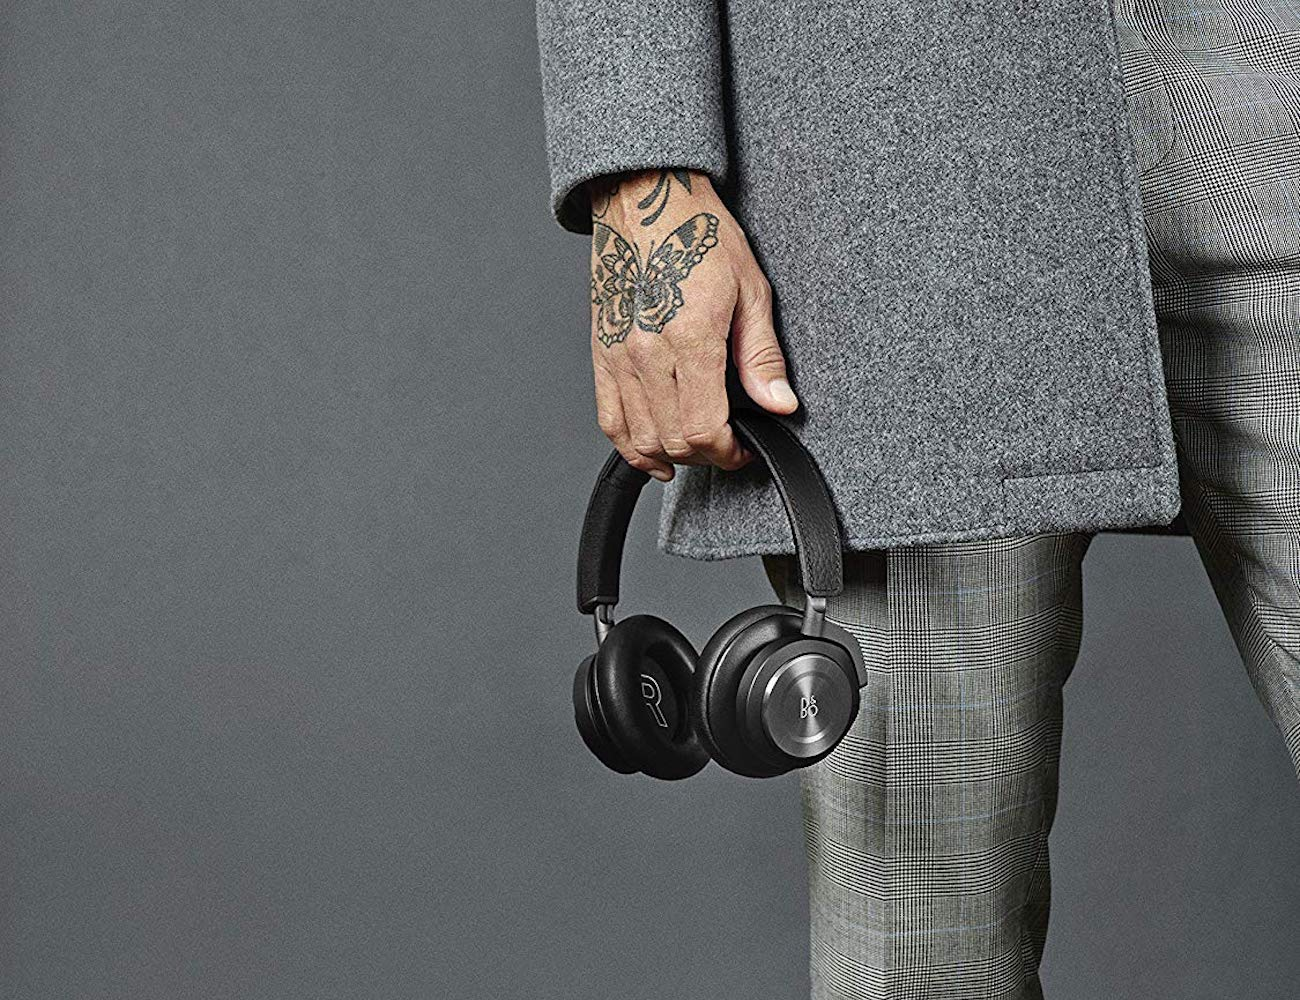 Beoplay H9i ANC Wireless Over-Ear Headphones let you fully immerse yourself in music